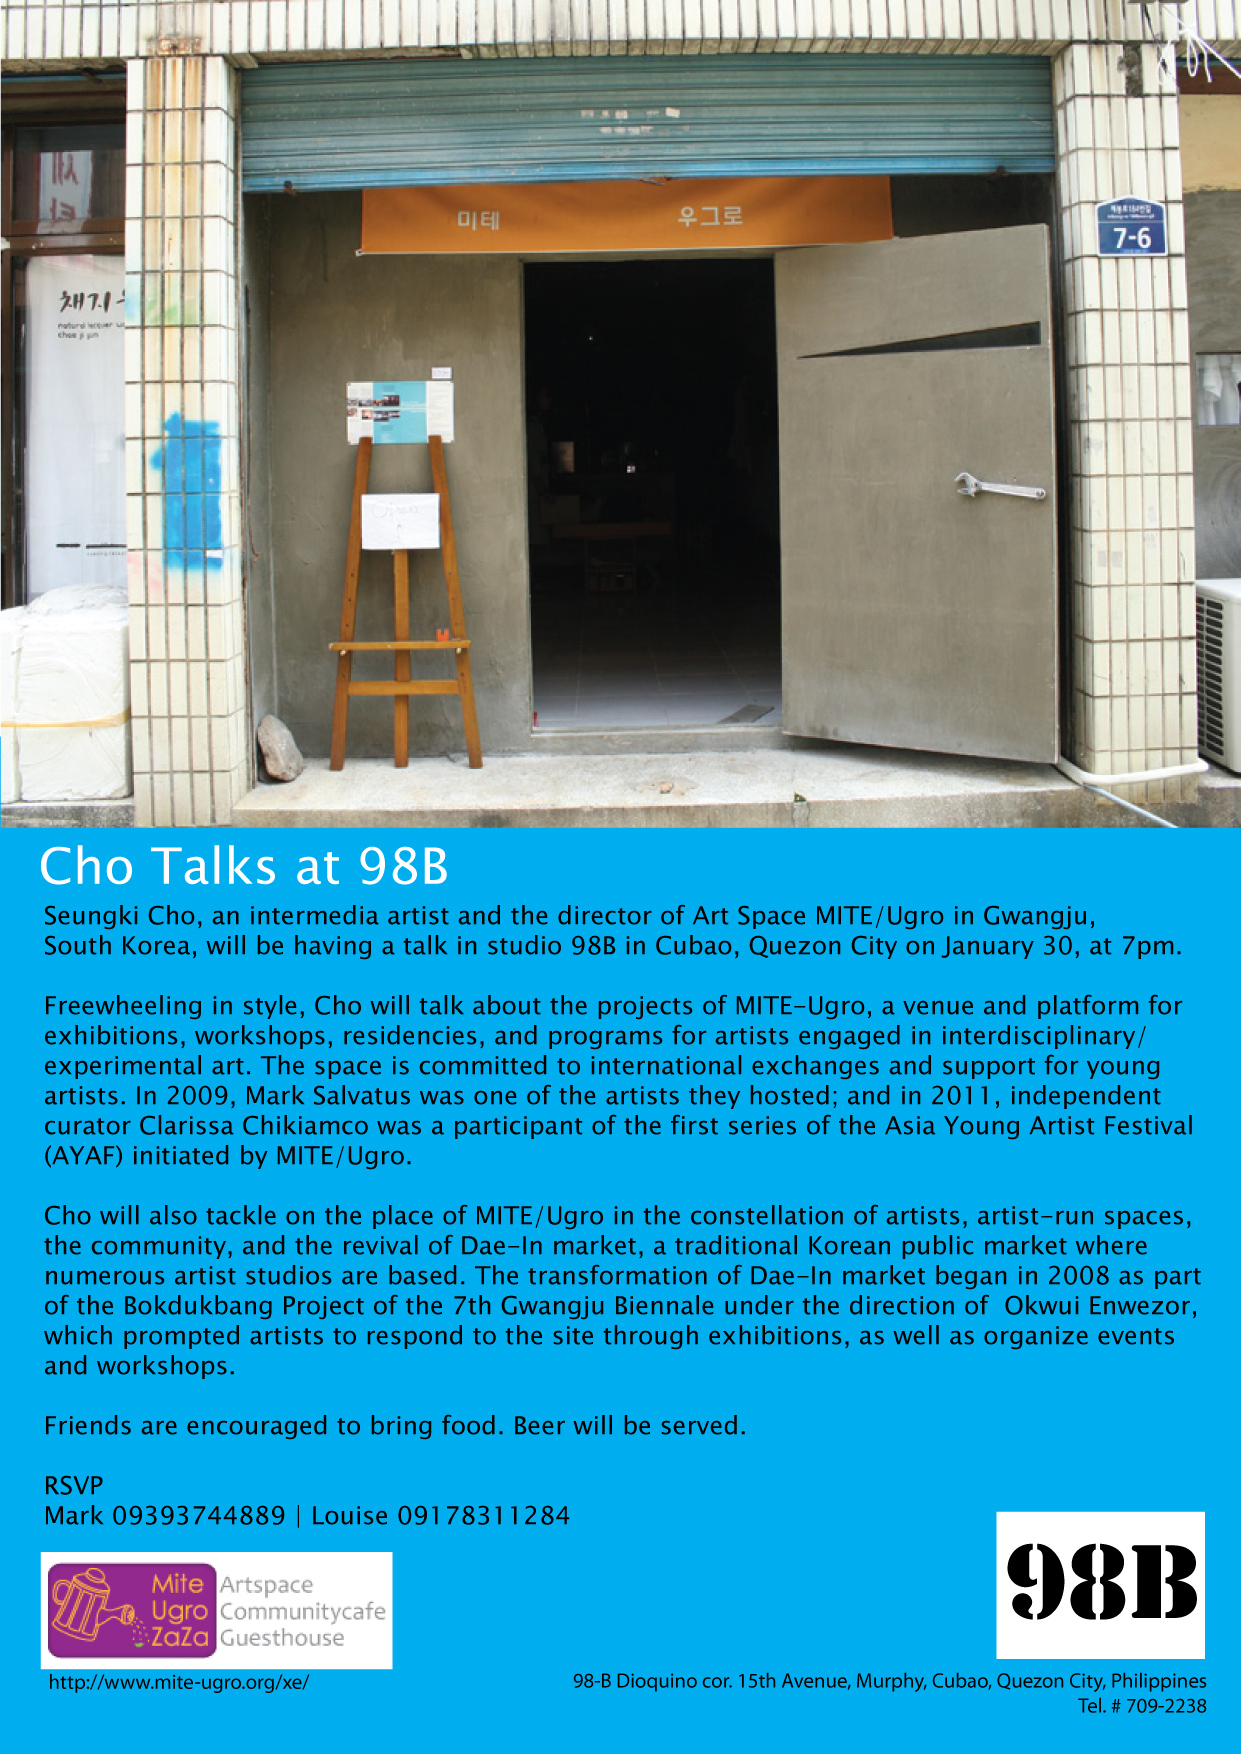 Cho Talks at 98B Seungki Cho, an intermedia artist and the director of Art Space MITE/Ugro in Gwangju, South Korea, will be having a talk in studio 98B in Cubao, Quezon City on January 30, at 7pm.  Freewheeling in style, Cho will talk about the projects of MITE-Ugro, a venue and platform for exhibitions, workshops, residencies, and programs for artists engaged in interdisciplinary/experimental art. The space is committed to international exchanges and support for young  artists. In 2009, Mark Salvatus was one of the artists they hosted; and in 2011, independent curator Clarissa Chikiamco was a participant of the first series of the Asia Young Artist Festival  (AYAF) initiated by MITE/Ugro. Cho will also tackle on the place of MITE/Ugro in the constellation of artists, artist-run spaces, the community, and the revival of Dae-In market, a traditional Korean public market where numerous artist studios are based. The transformation of Dae-In market began in 2008 as part  of the Bokdukbang Project of the 7th Gwangju Biennale under the direction of Okwui Enwezor, which prompted artists to respond to the site through exhibitions, as well as organize events  and workshops. ________________________________ Seungki Cho is the director of Art Space Mite-Ugro, a non-profit organization in Gwangju, South Korea. Cho obtained his BFA and MFA in sculpture, both in Chonnam National University in Gwangju. He lives and works in Gwangju, and fosters an international network of artists and other practitioners in line with the goals of Mite-Ugro.  Established by a group of local artists and curators, Mite Ugro is comprised of exhibition halls, public kitchen, community cafe, guesthouse, and artist studios. Its major activities include holding seminars and workshops, international residency programs, and an exhibition program that harnesses interdisciplinary practice and collaboration. A recent initiative of Mite Ugro is the Asian Young Artist Festival; an experimental cultural festival held between March to May 2011. Artists and curators from Japan, Korea, Taiwan, Nepal, Philippines, and Thailand participated in the festival. From the Philippines's end, Independent curator and writer Lisa Chikiamco was invited to be part of this program. Friends are encouraged to bring food. Beer will be served.  98-B Dioquino cor. 15th Avenue, Murphy, Cubao, Quezon City, Philippines Capacity: 30 people RSVP  Mark 09393744889 | Louise 09178311284